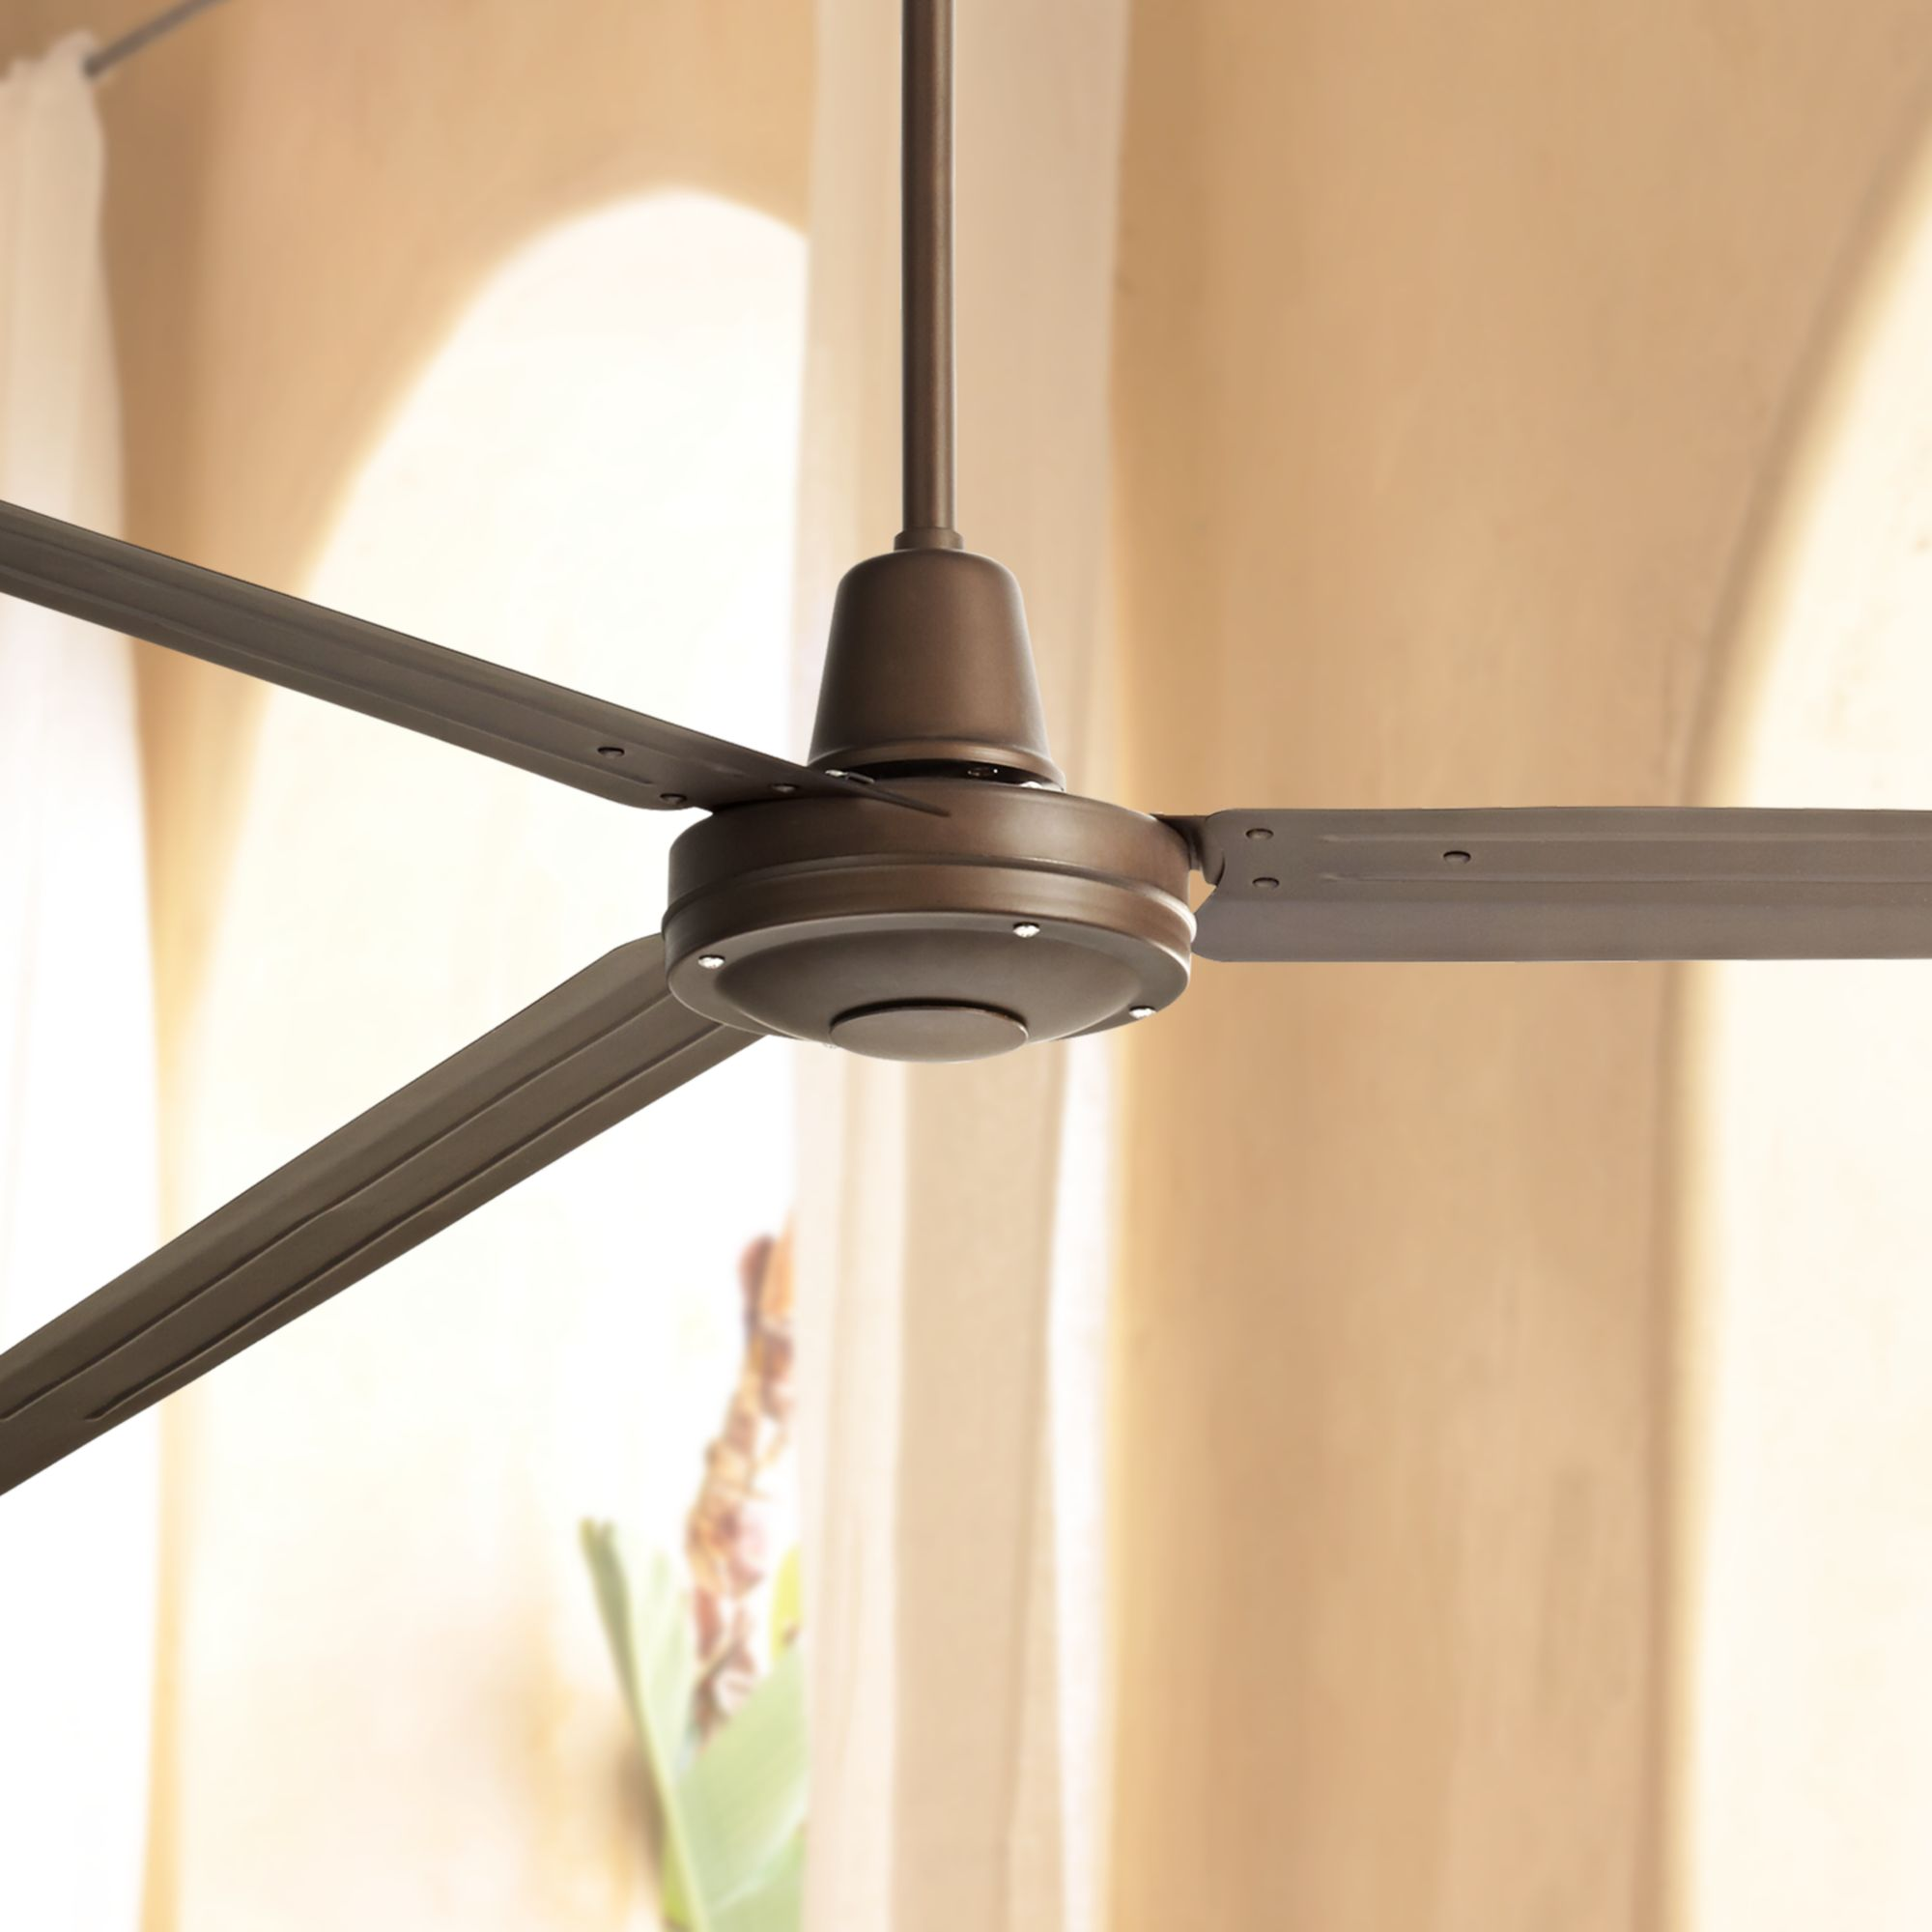 """84"""" Casa Vieja Industrial Outdoor Ceiling Fan with Remote Control Large Oil Rubbed Bronze Damp Rated for Patio Porch"""